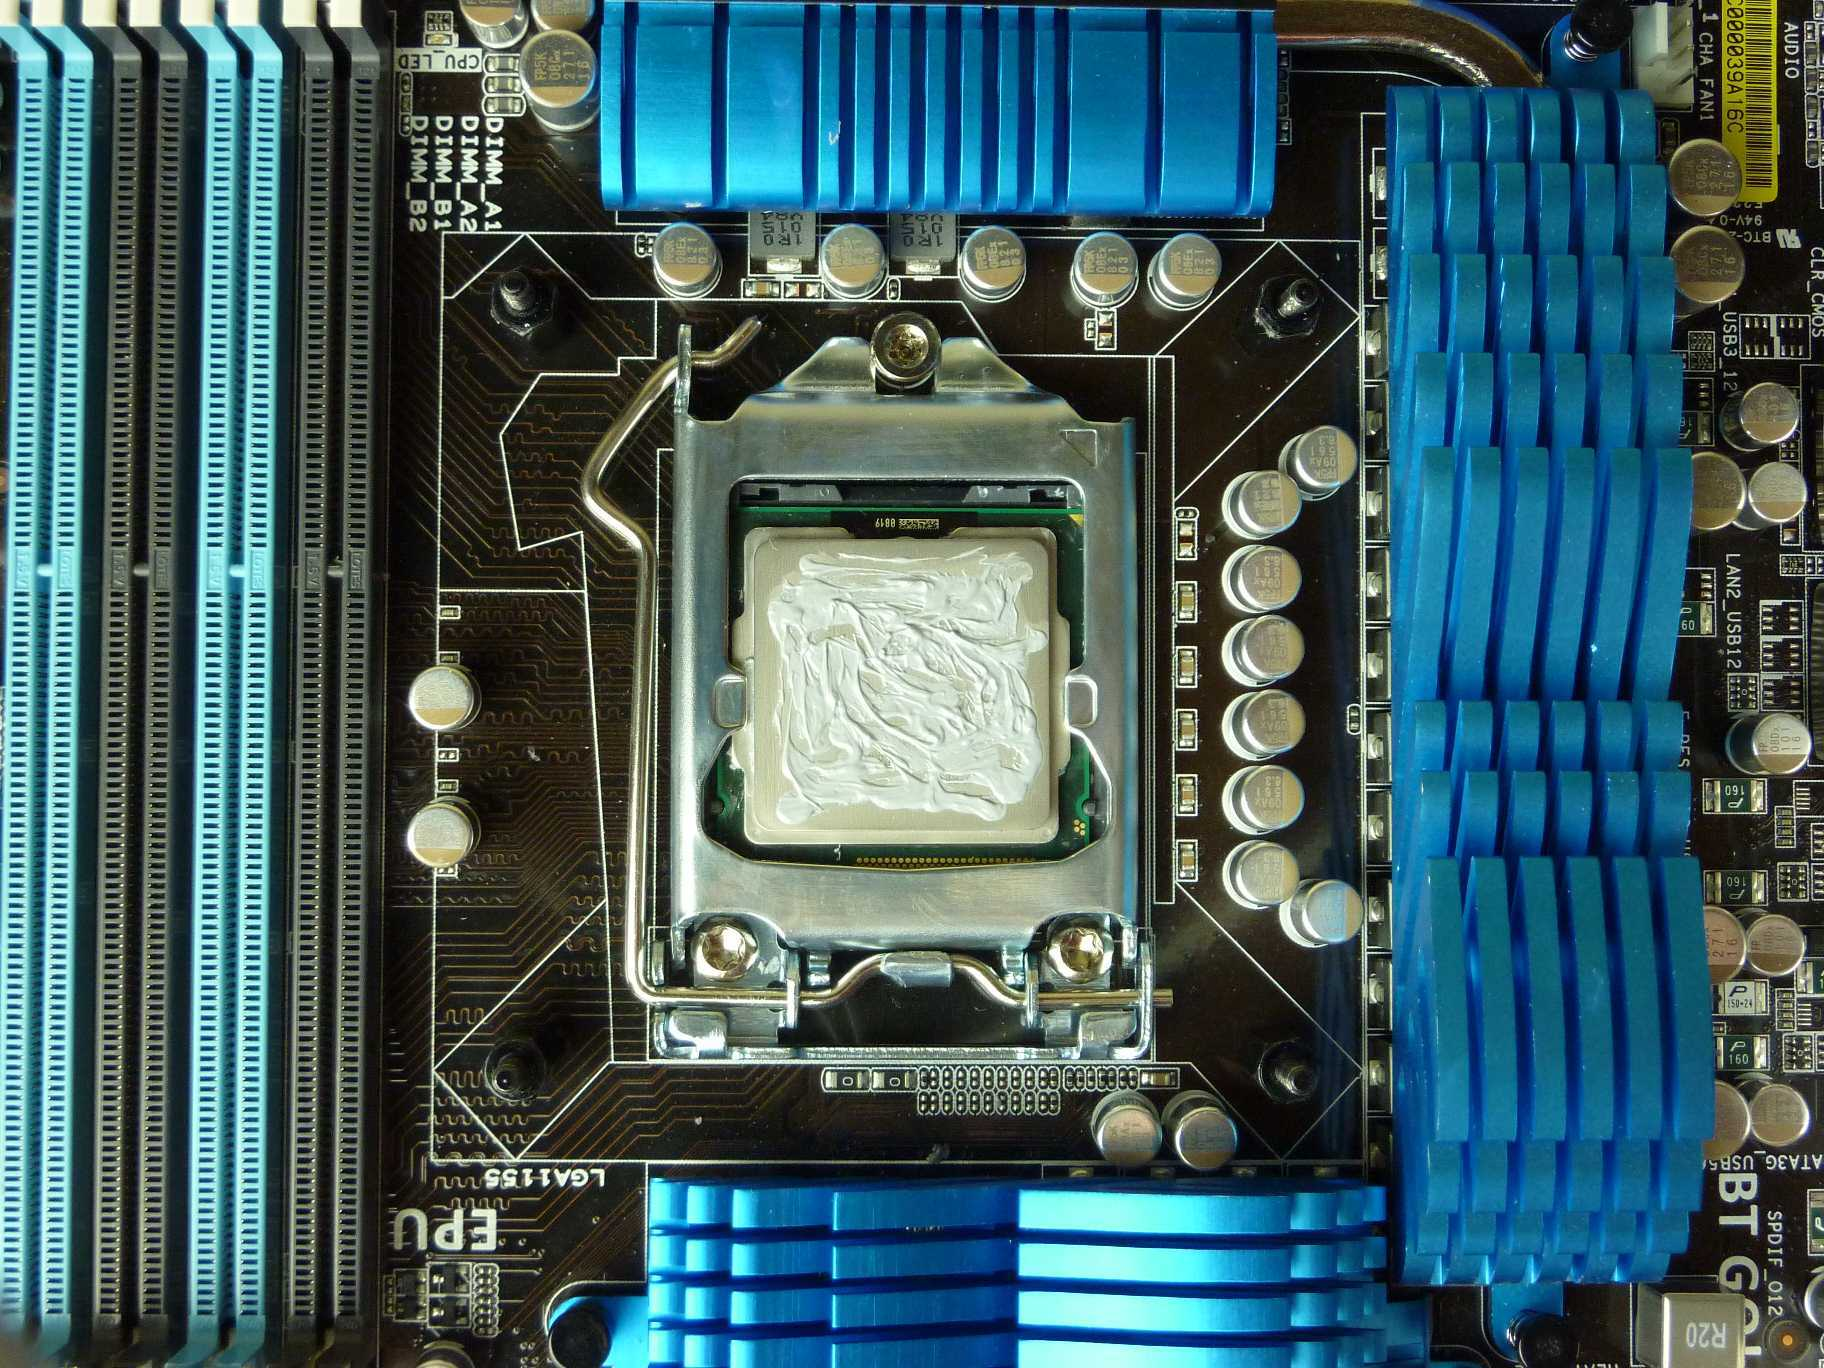 Thermal Paste rough spread